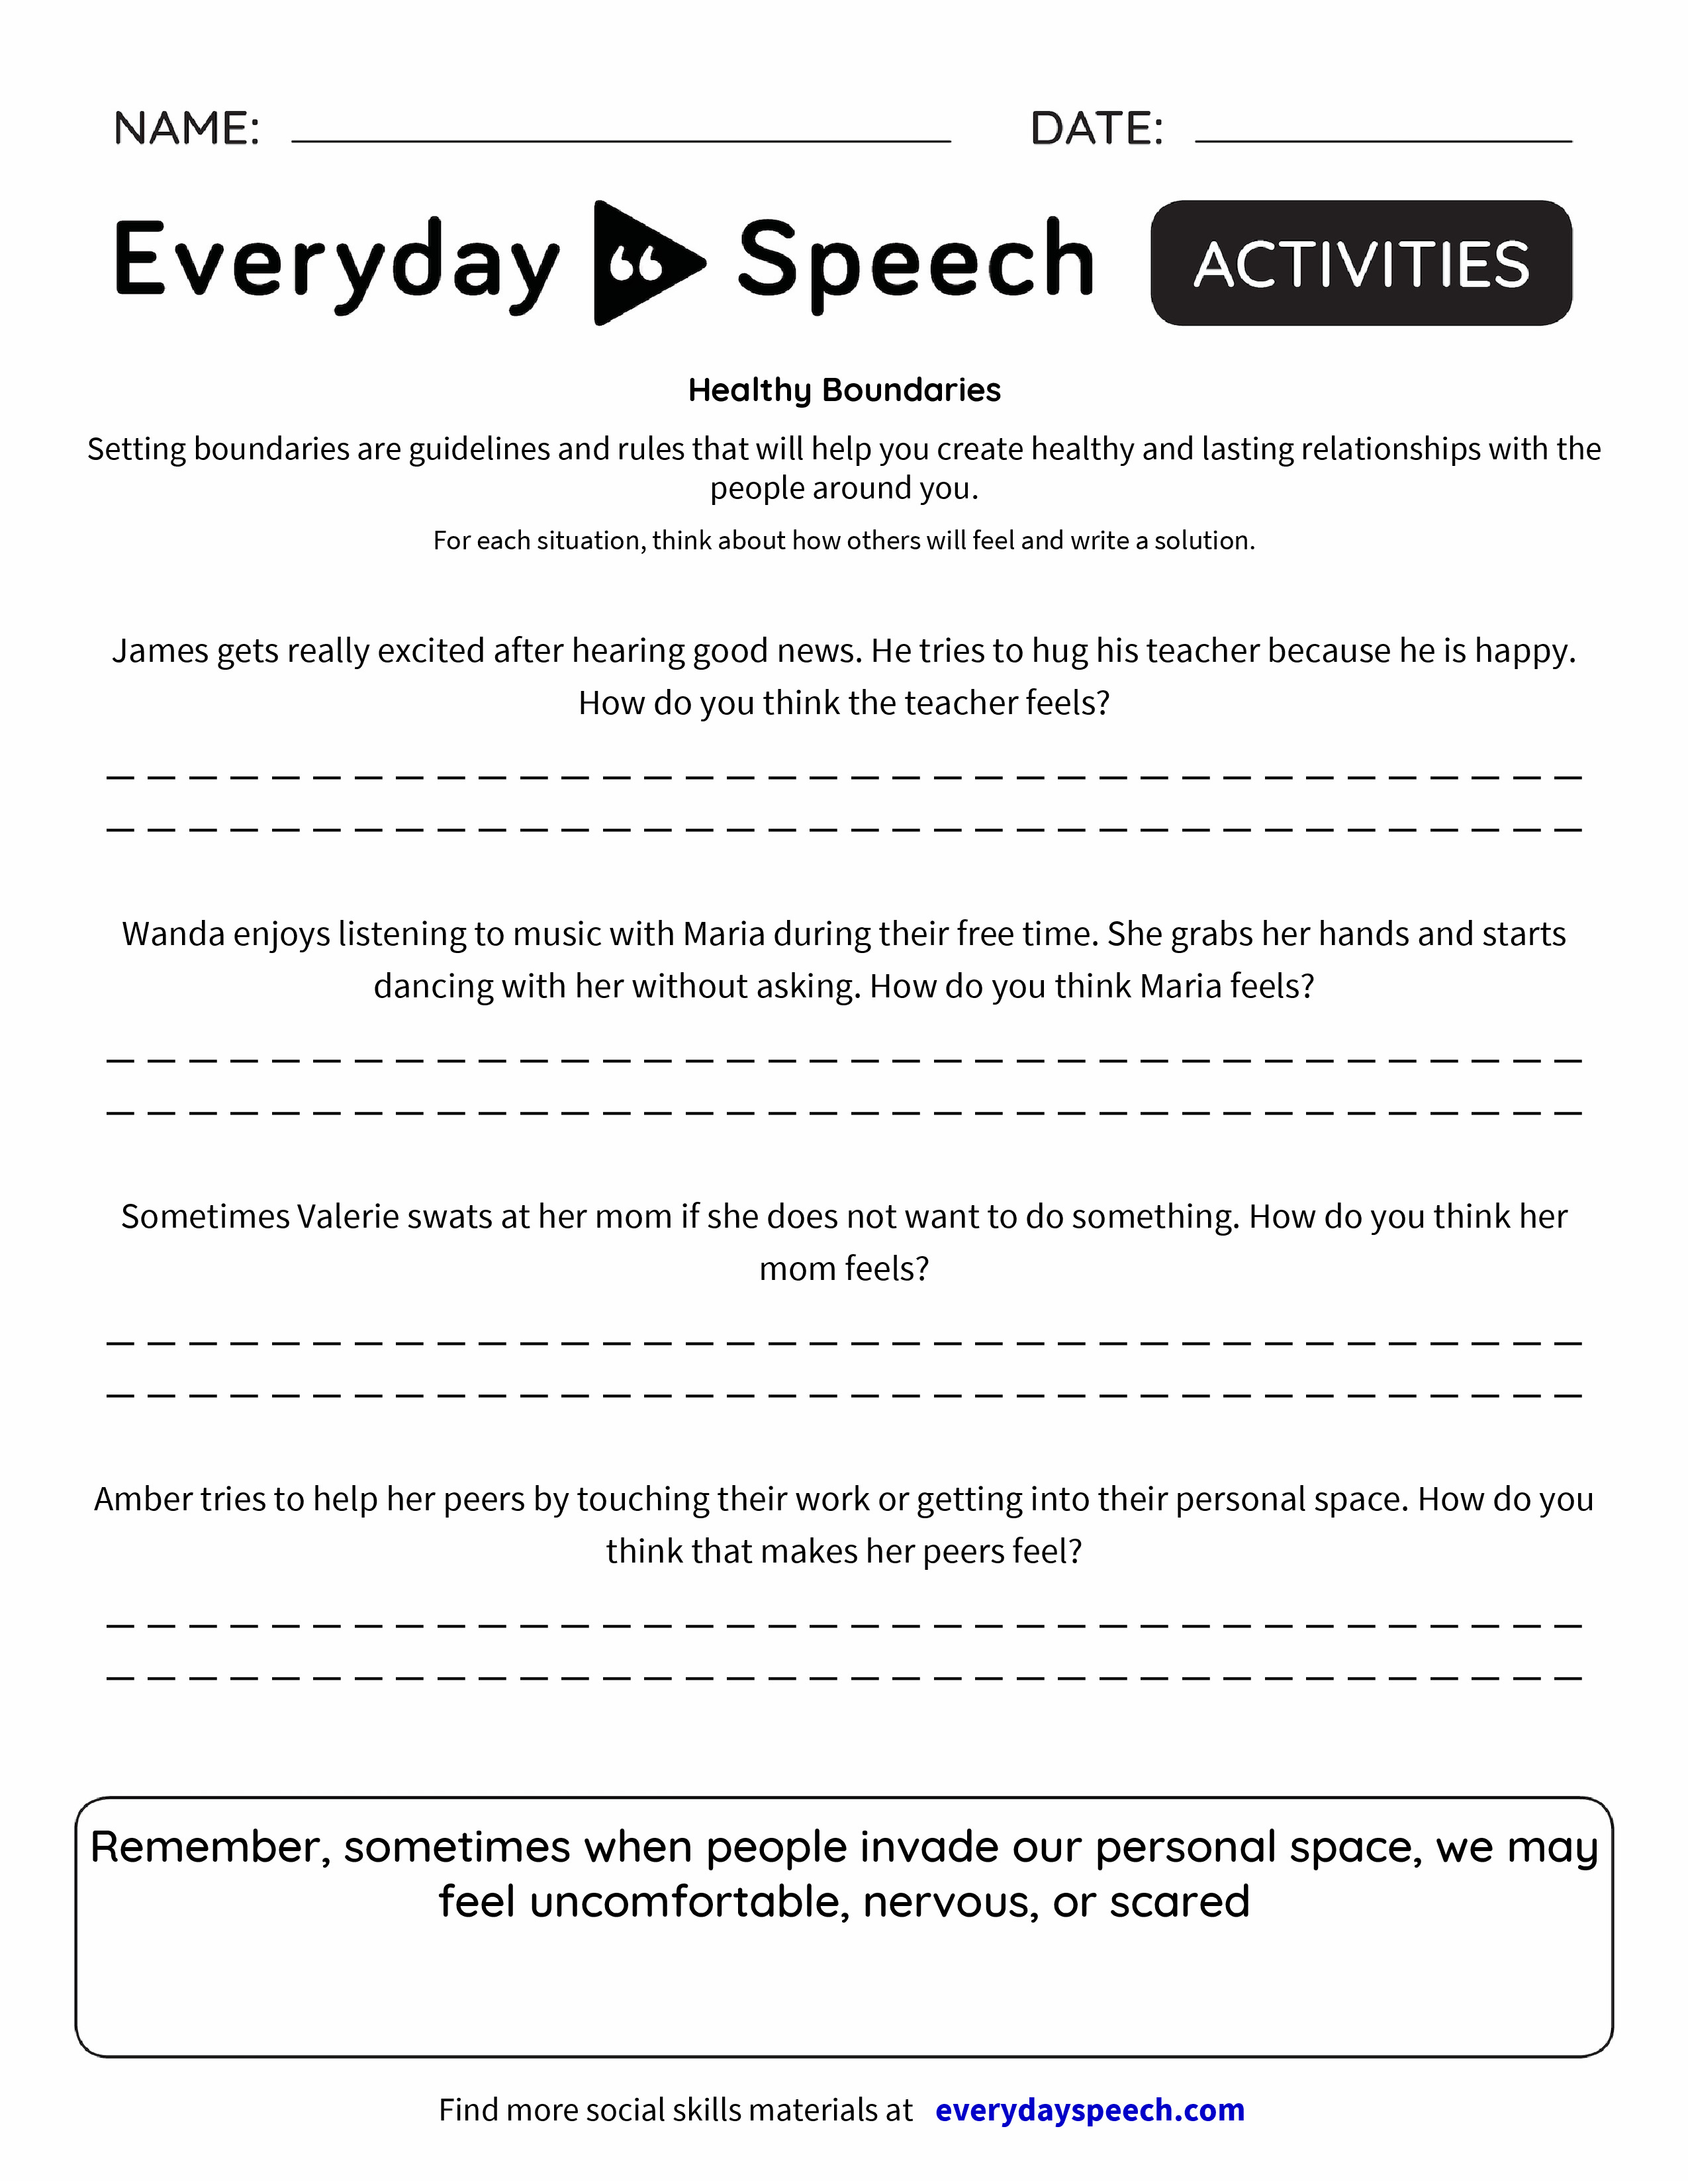 Healthy Boundaries Worksheets For Women Beansmith